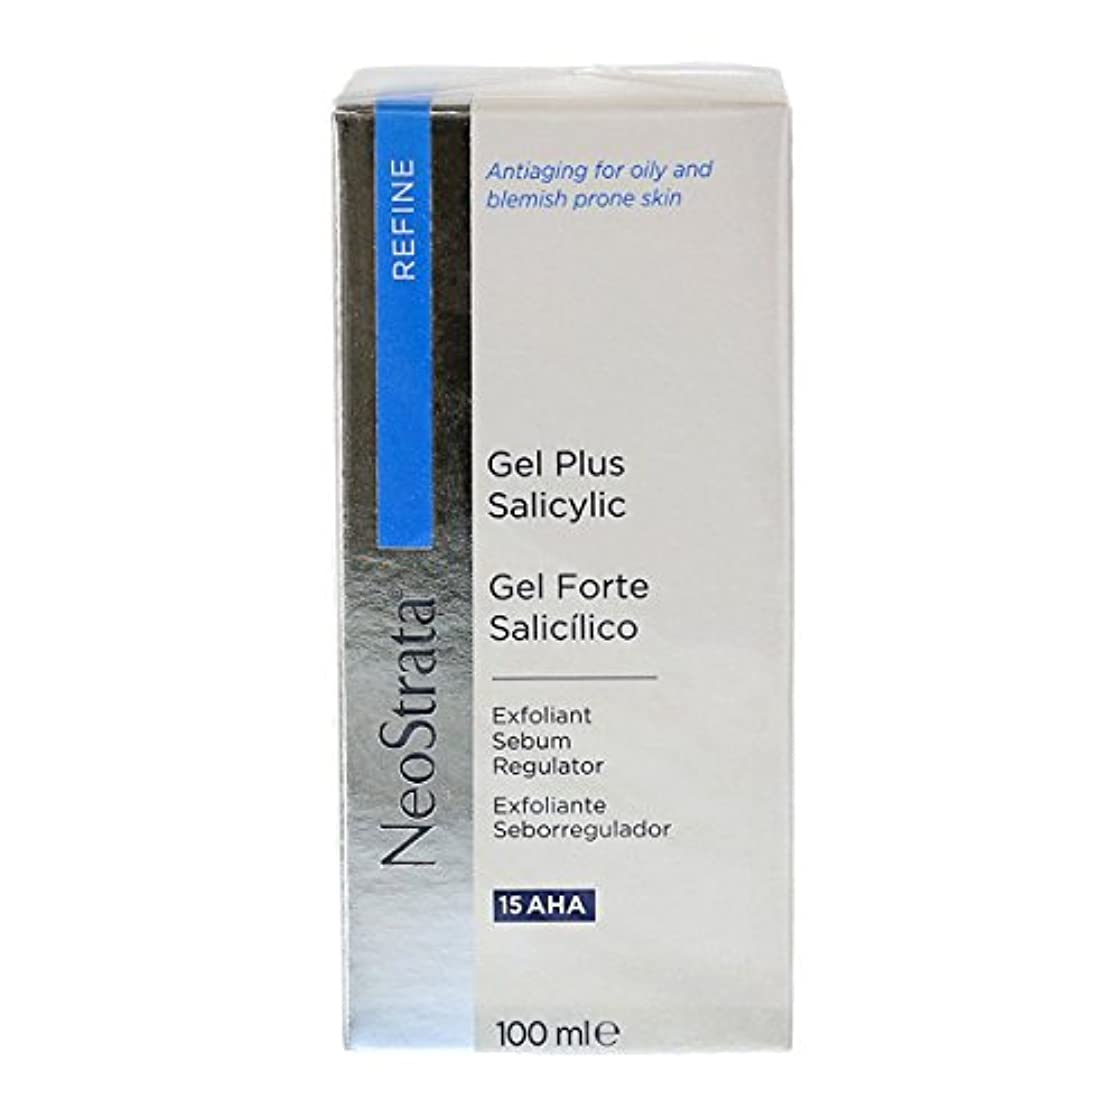 帽子勤勉な脅かすNeostrata Gel Plus Salicylic Exfoliant Sebum Regulator 100ml [並行輸入品]